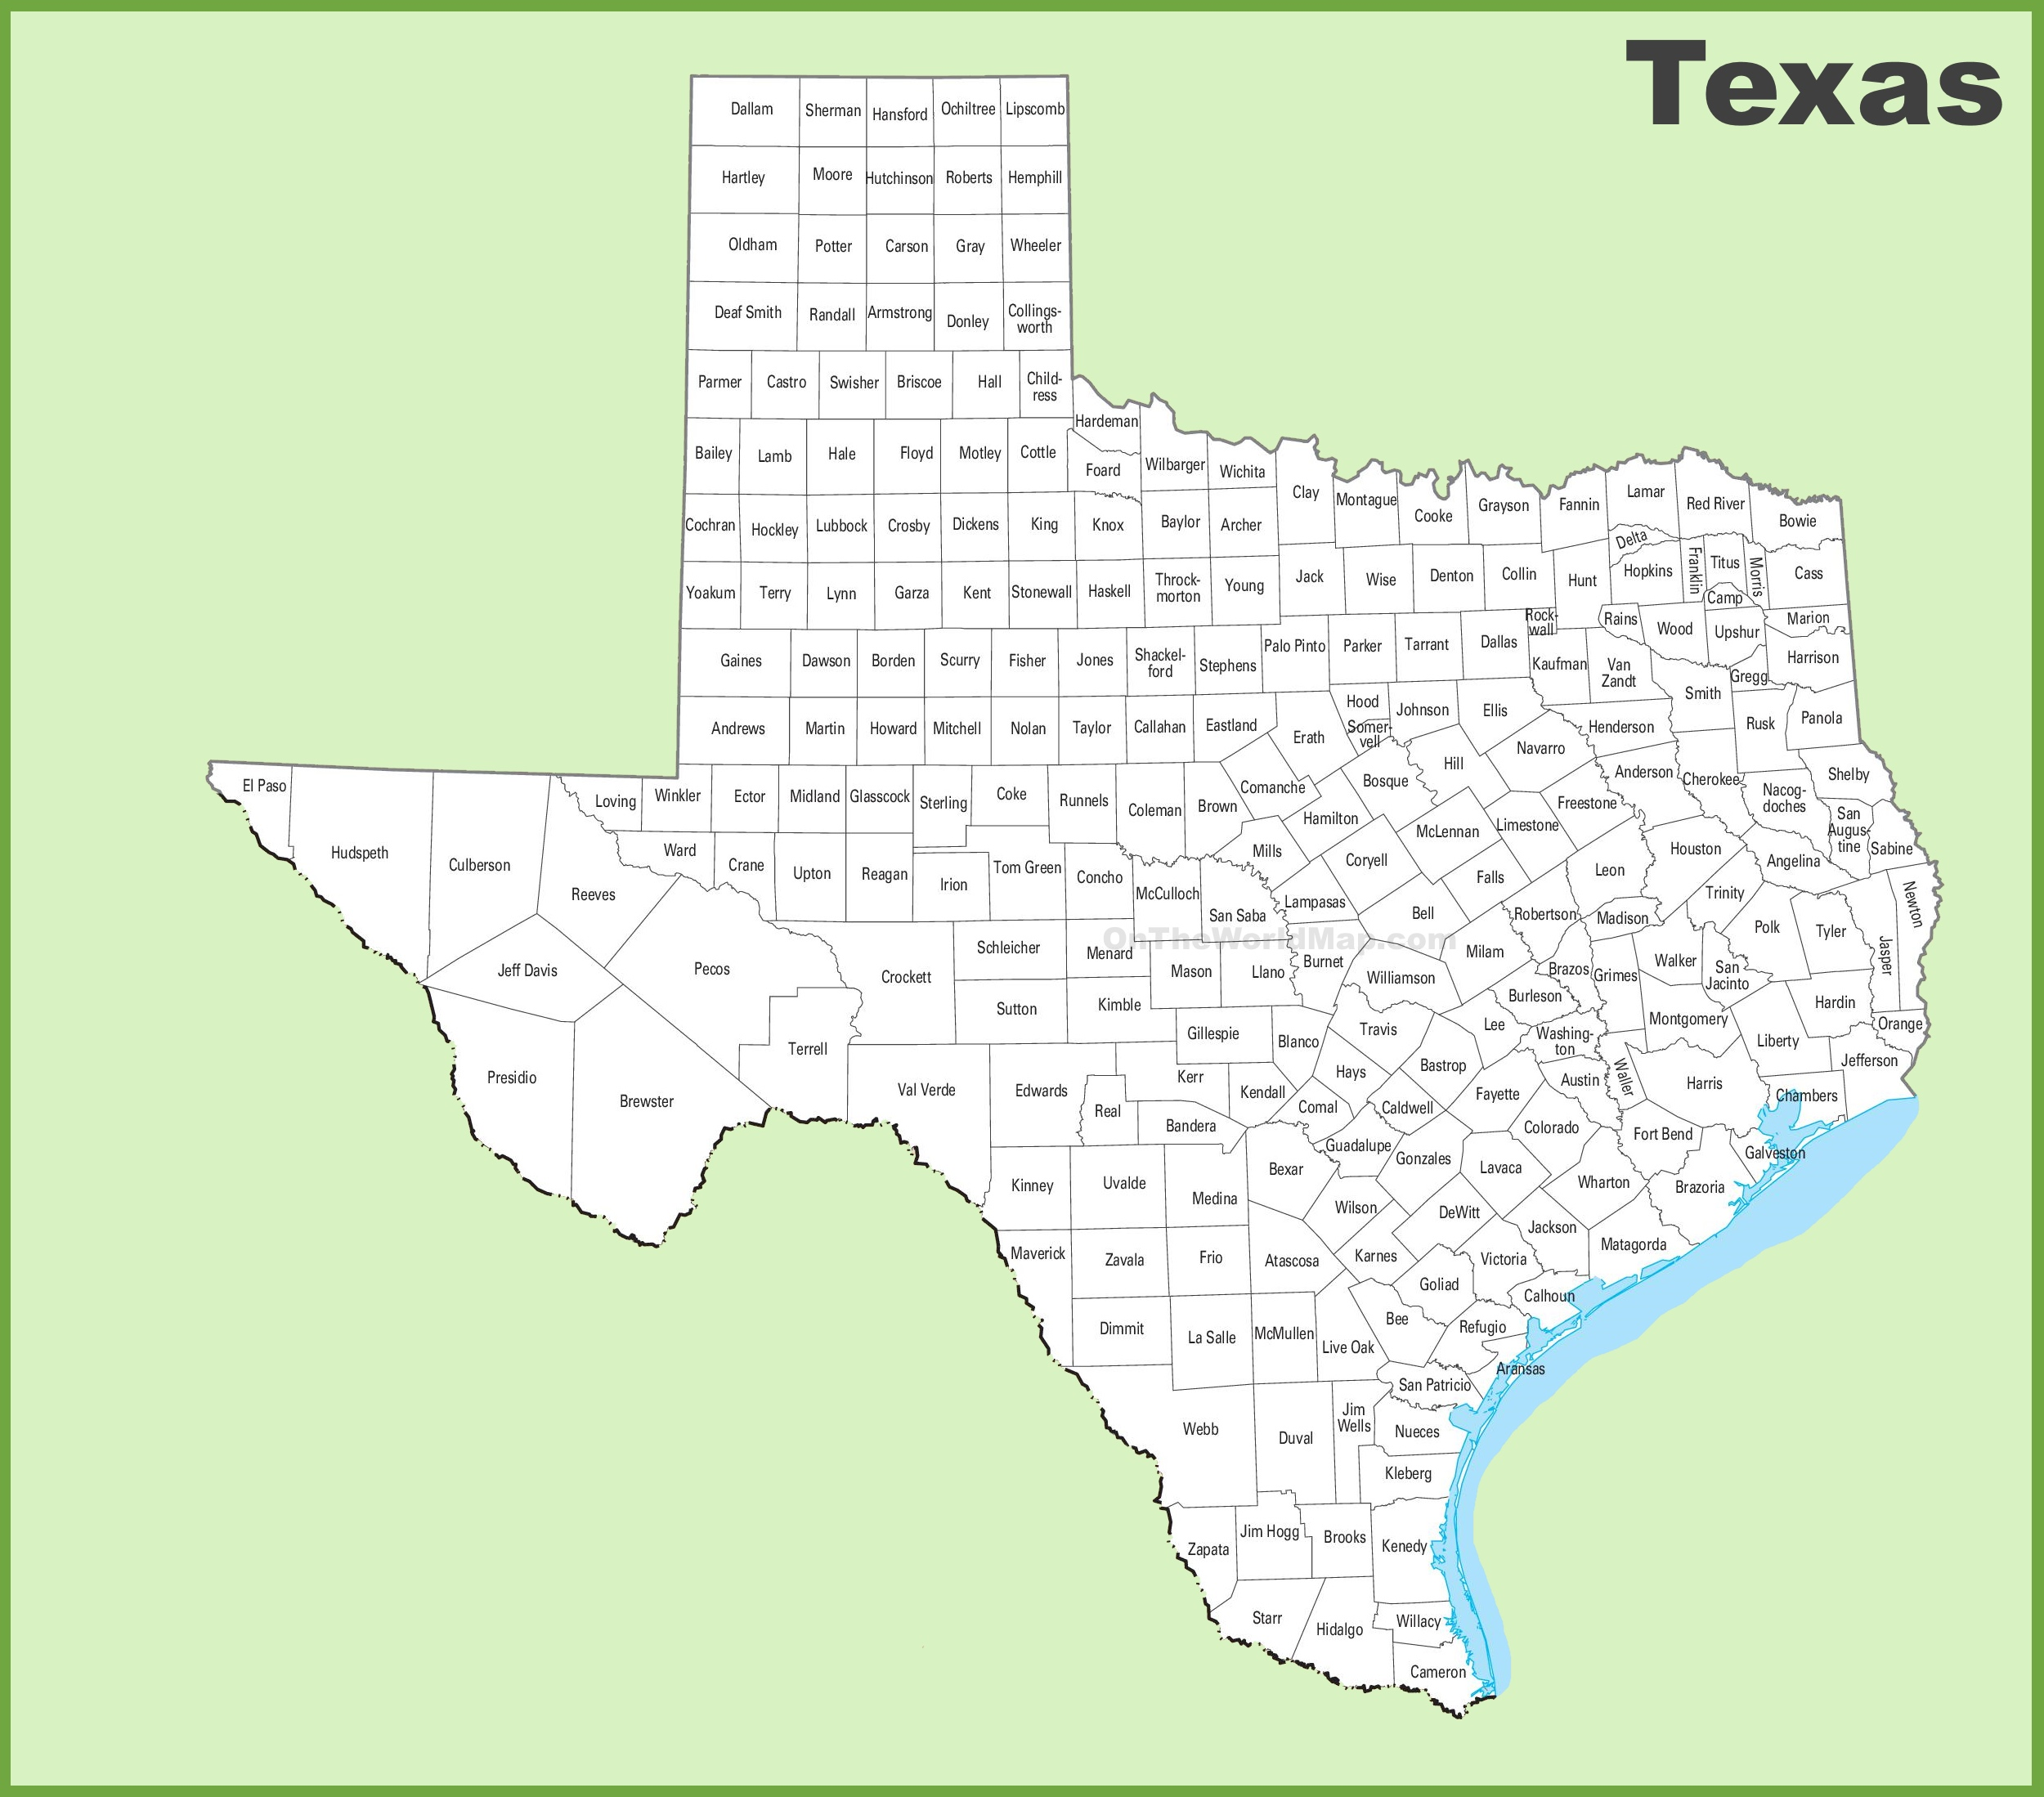 Texas County Map - Texas map with cities and counties